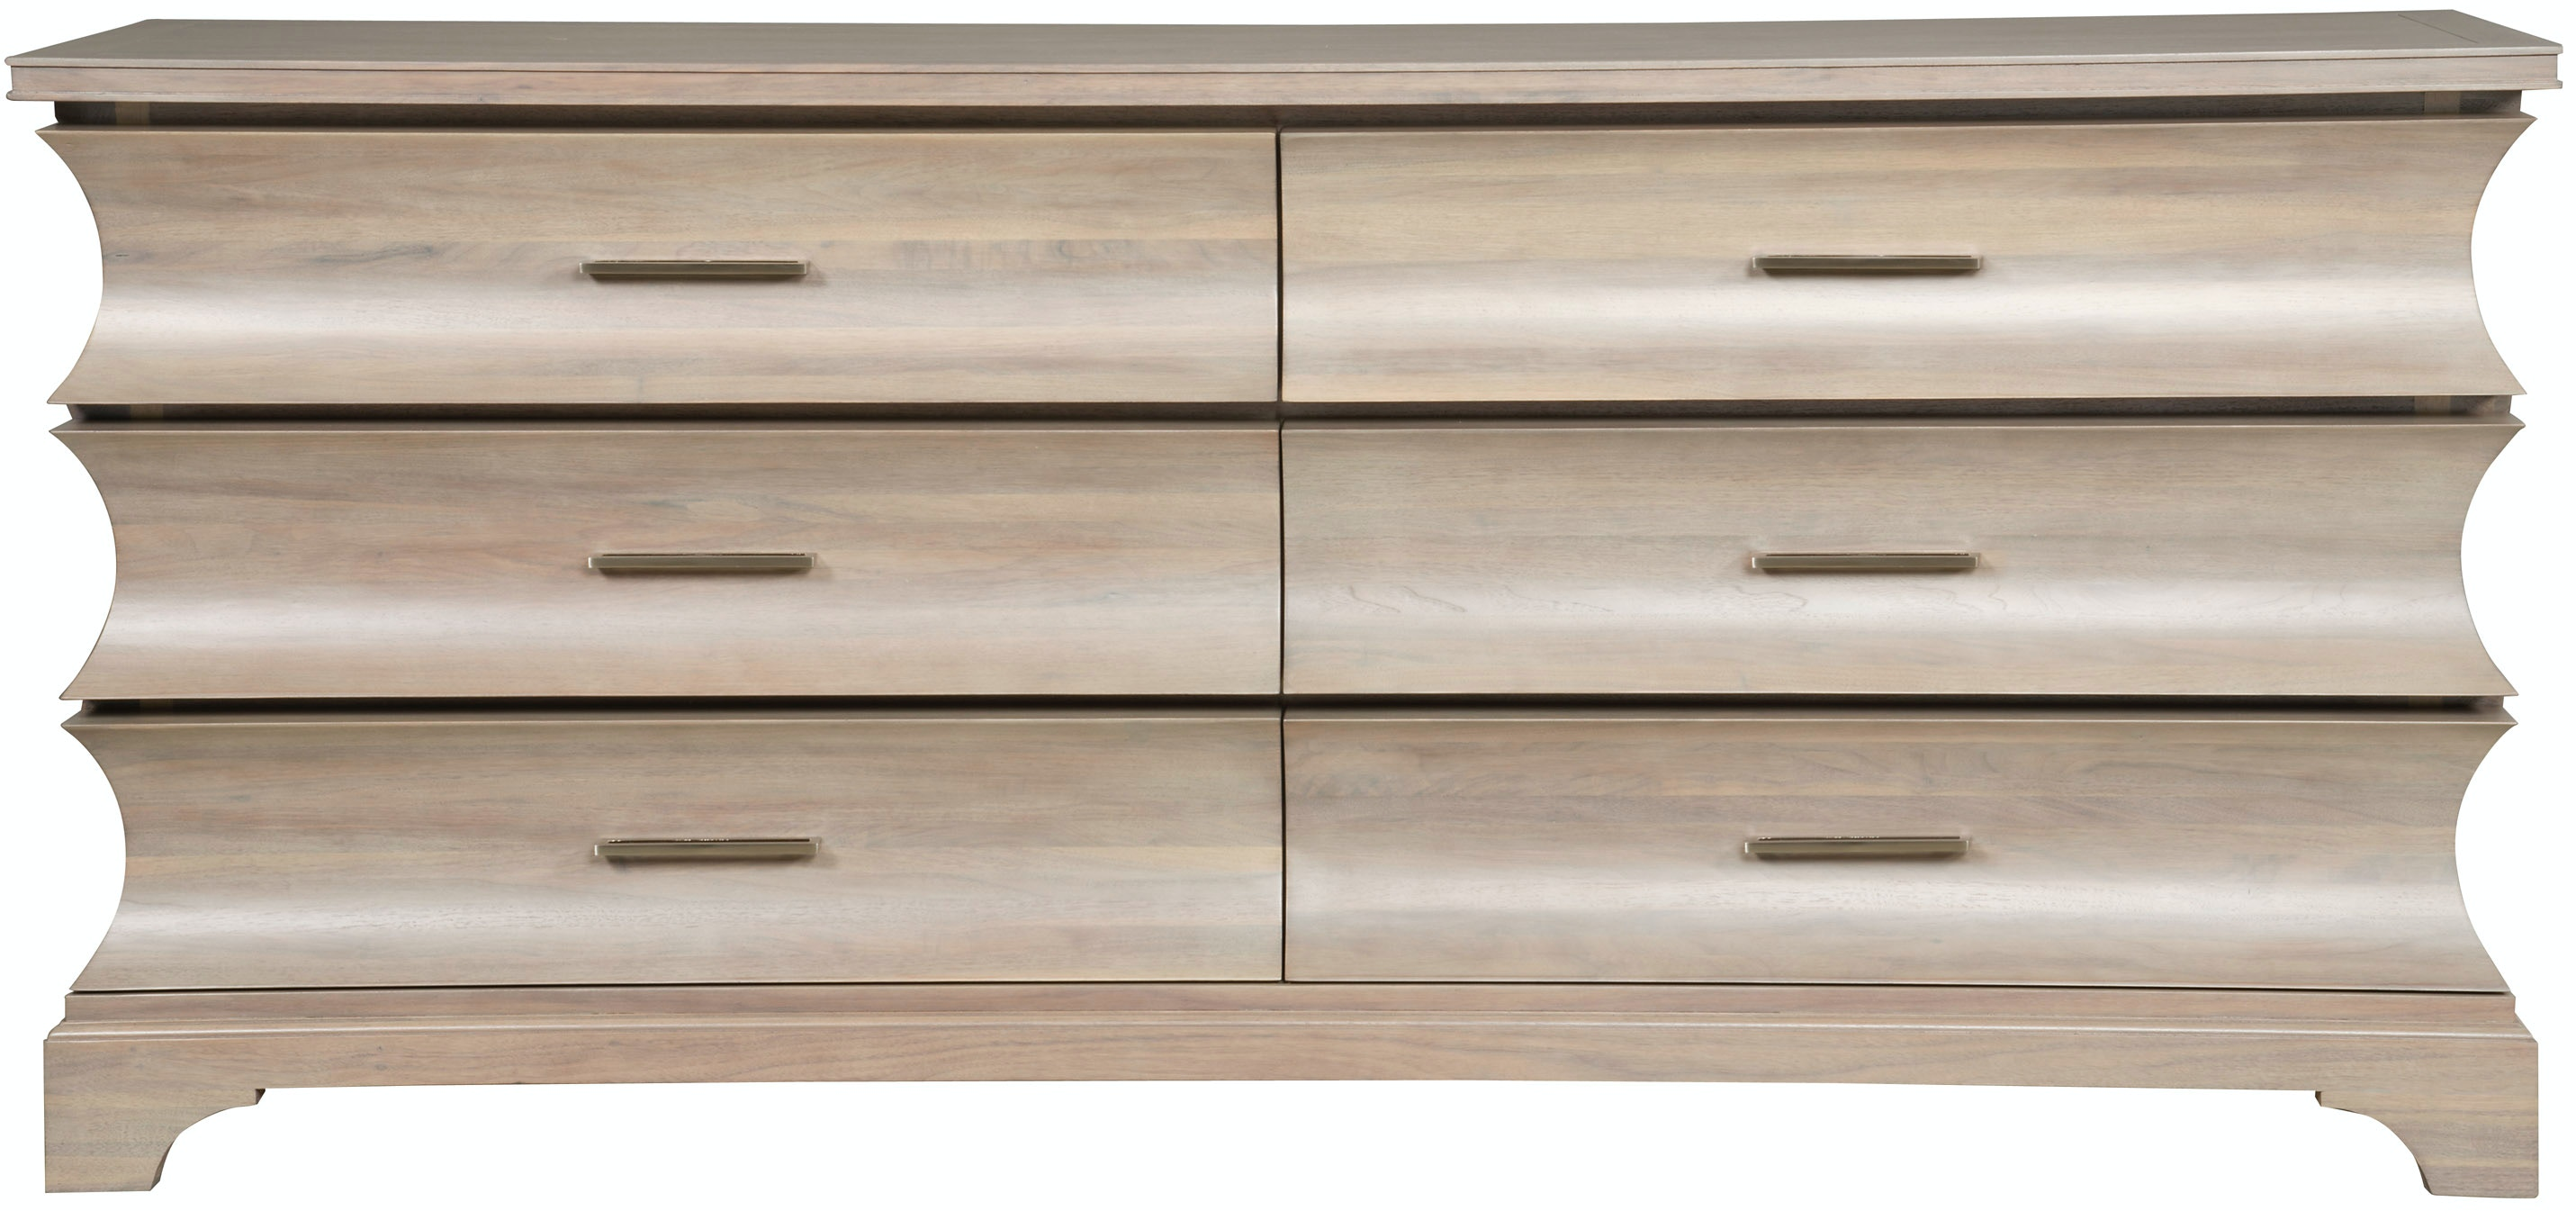 Charmant Vanguard Furniture Pebble Hill Chest Of Drawers 9515D